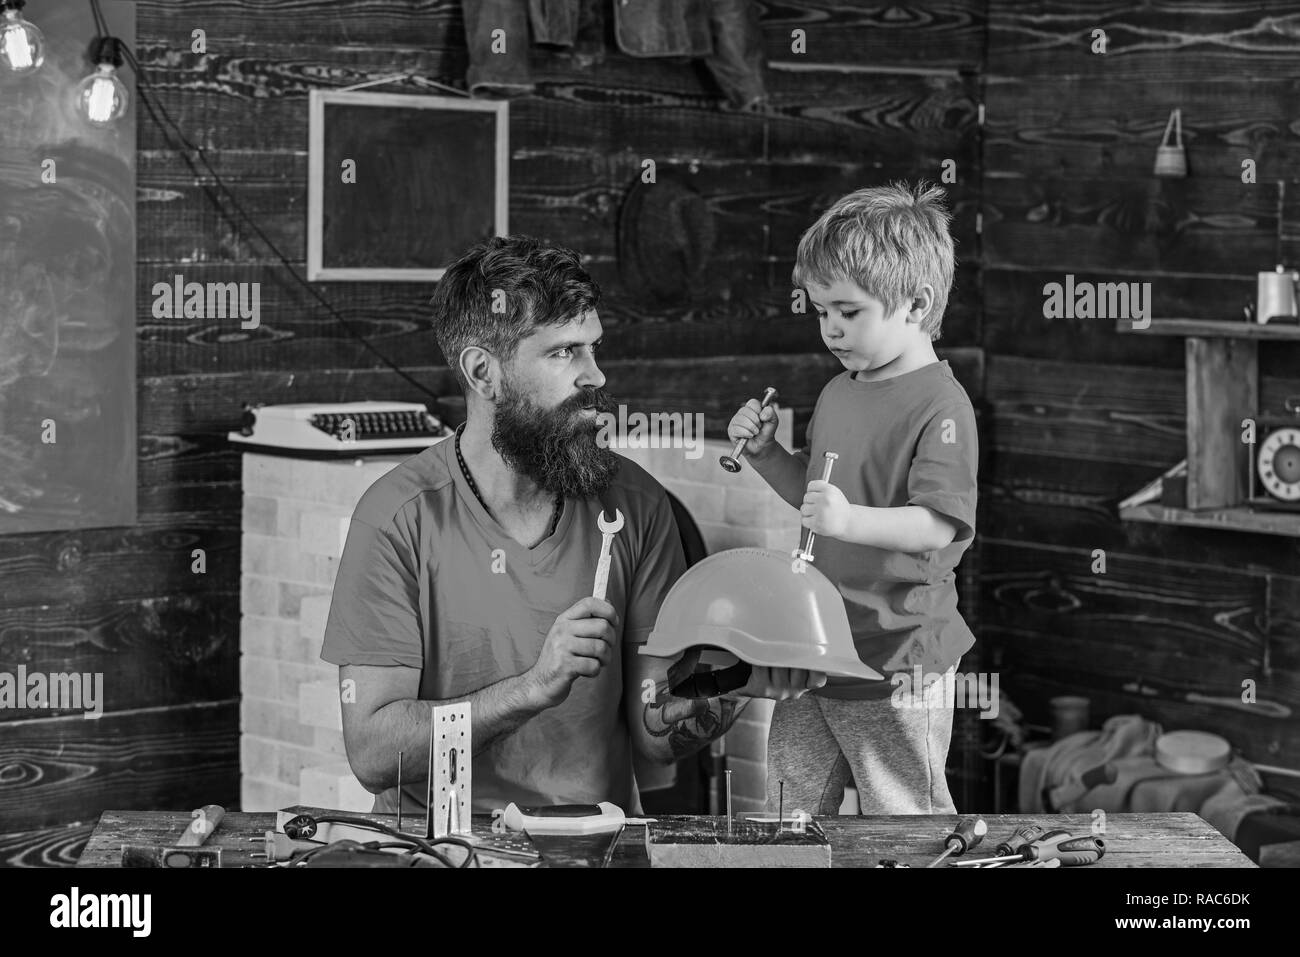 Safety and protection concept. Father, parent with beard holds helmet teaching son safety in school workshop. Boy, child cheerful holds bolts or screws, having fun while handcrafting with dad. - Stock Image